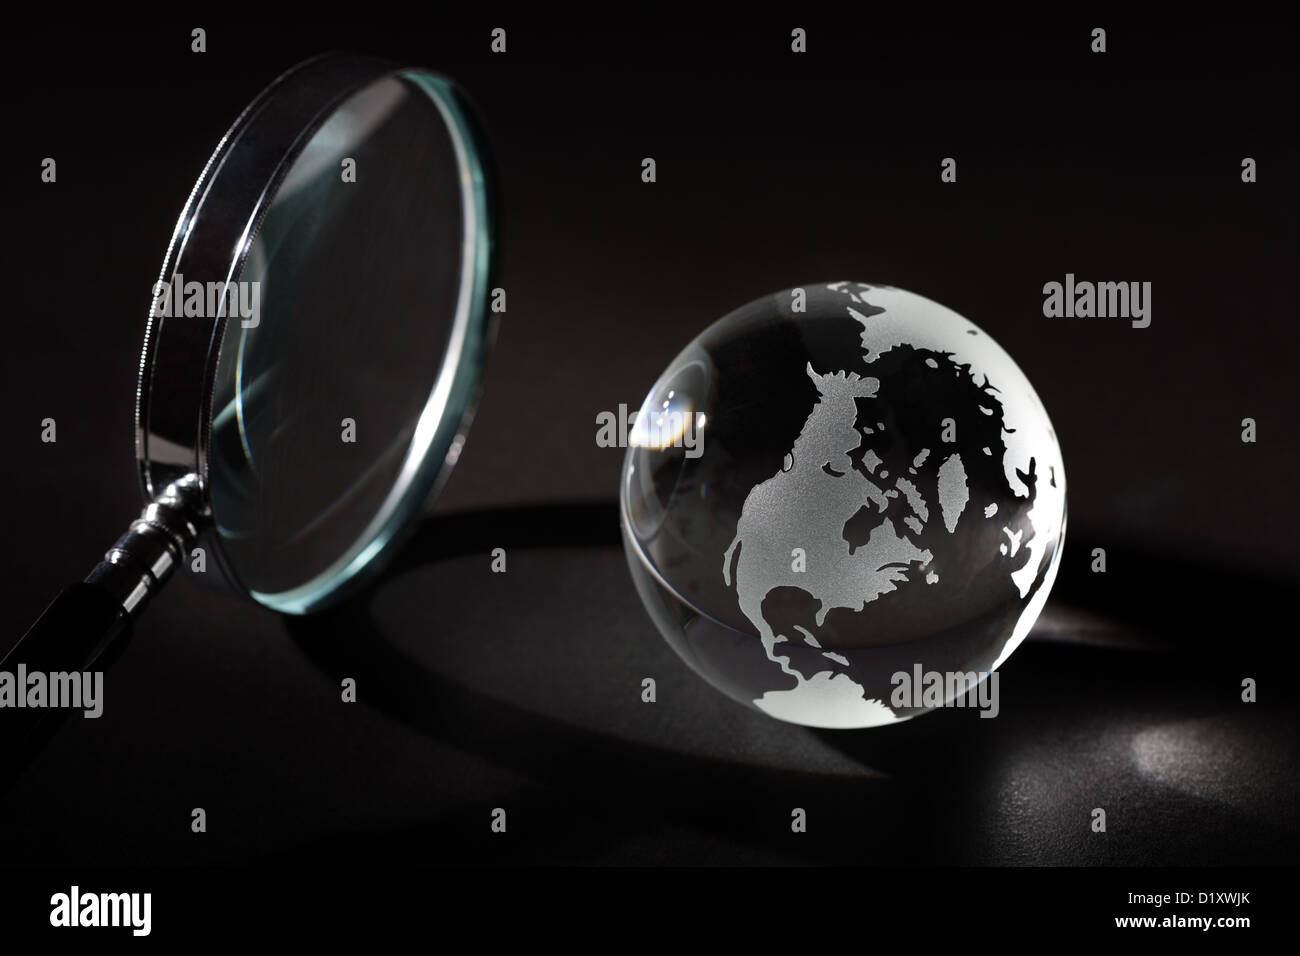 Global research - Stock Image